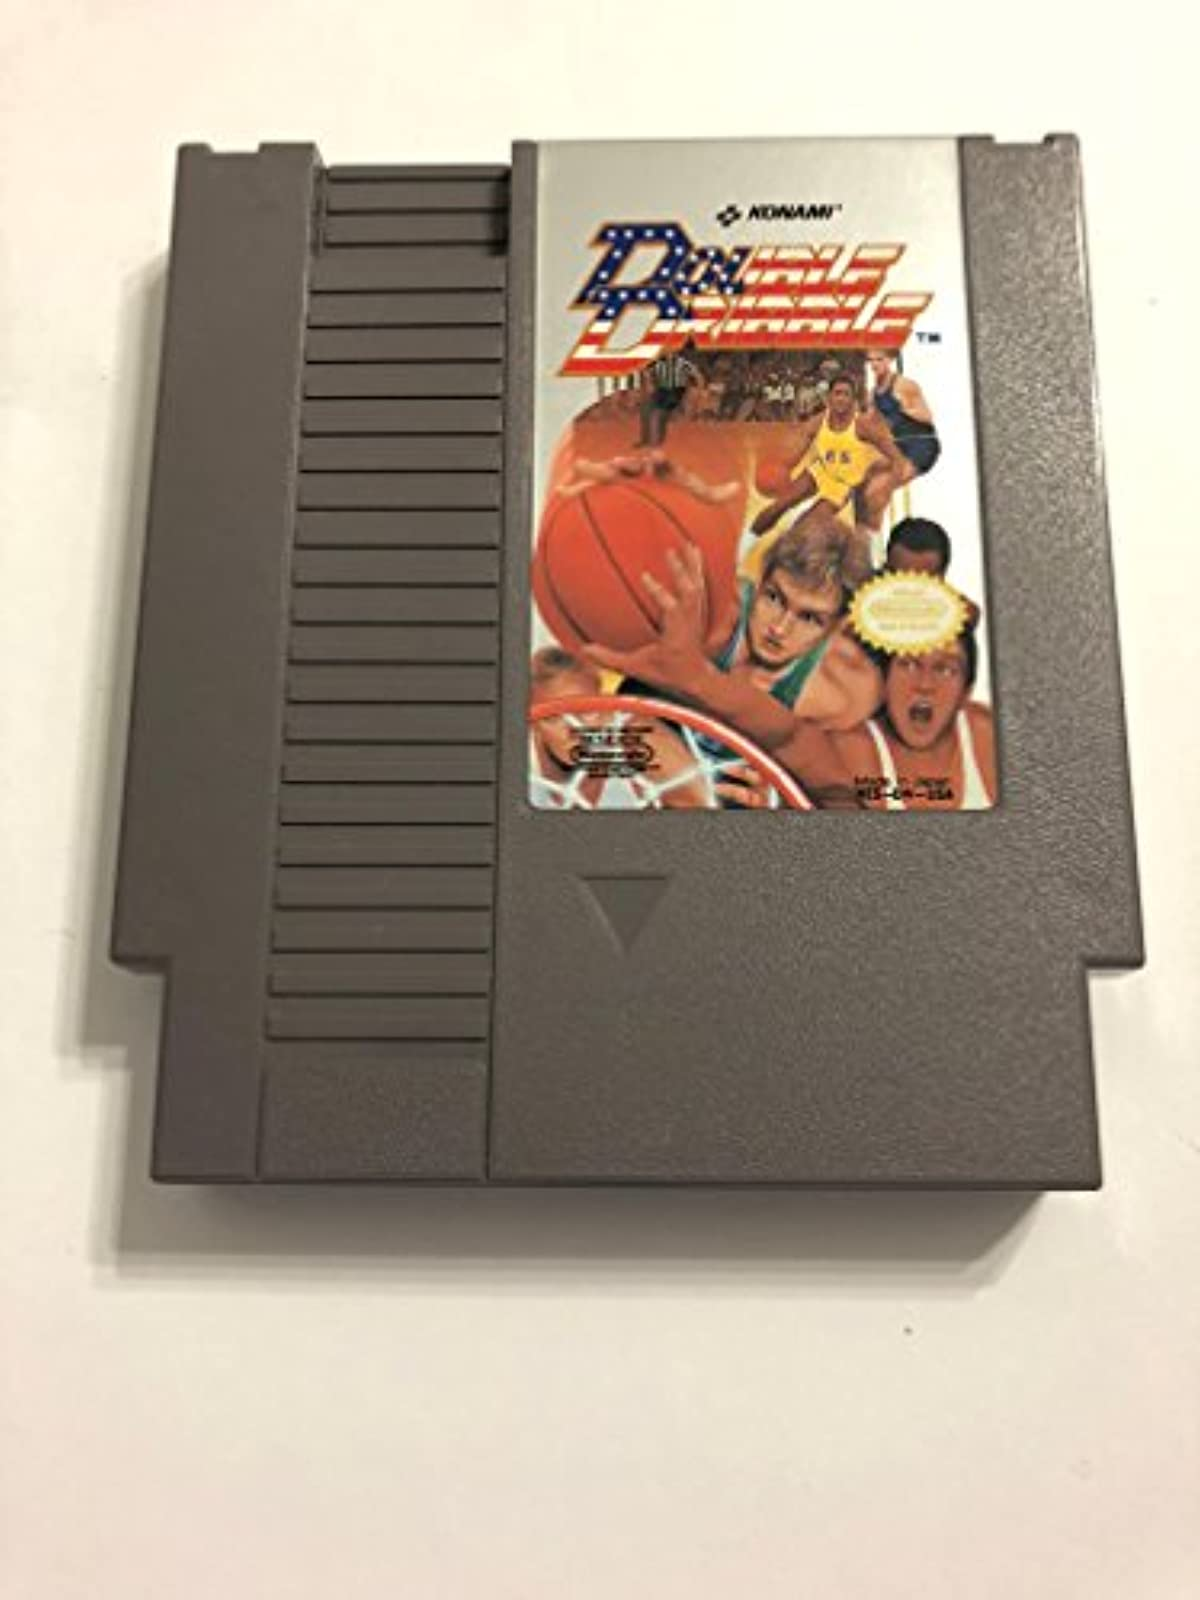 Double Dribble Nintendo NES For Nintendo NES Vintage Basketball